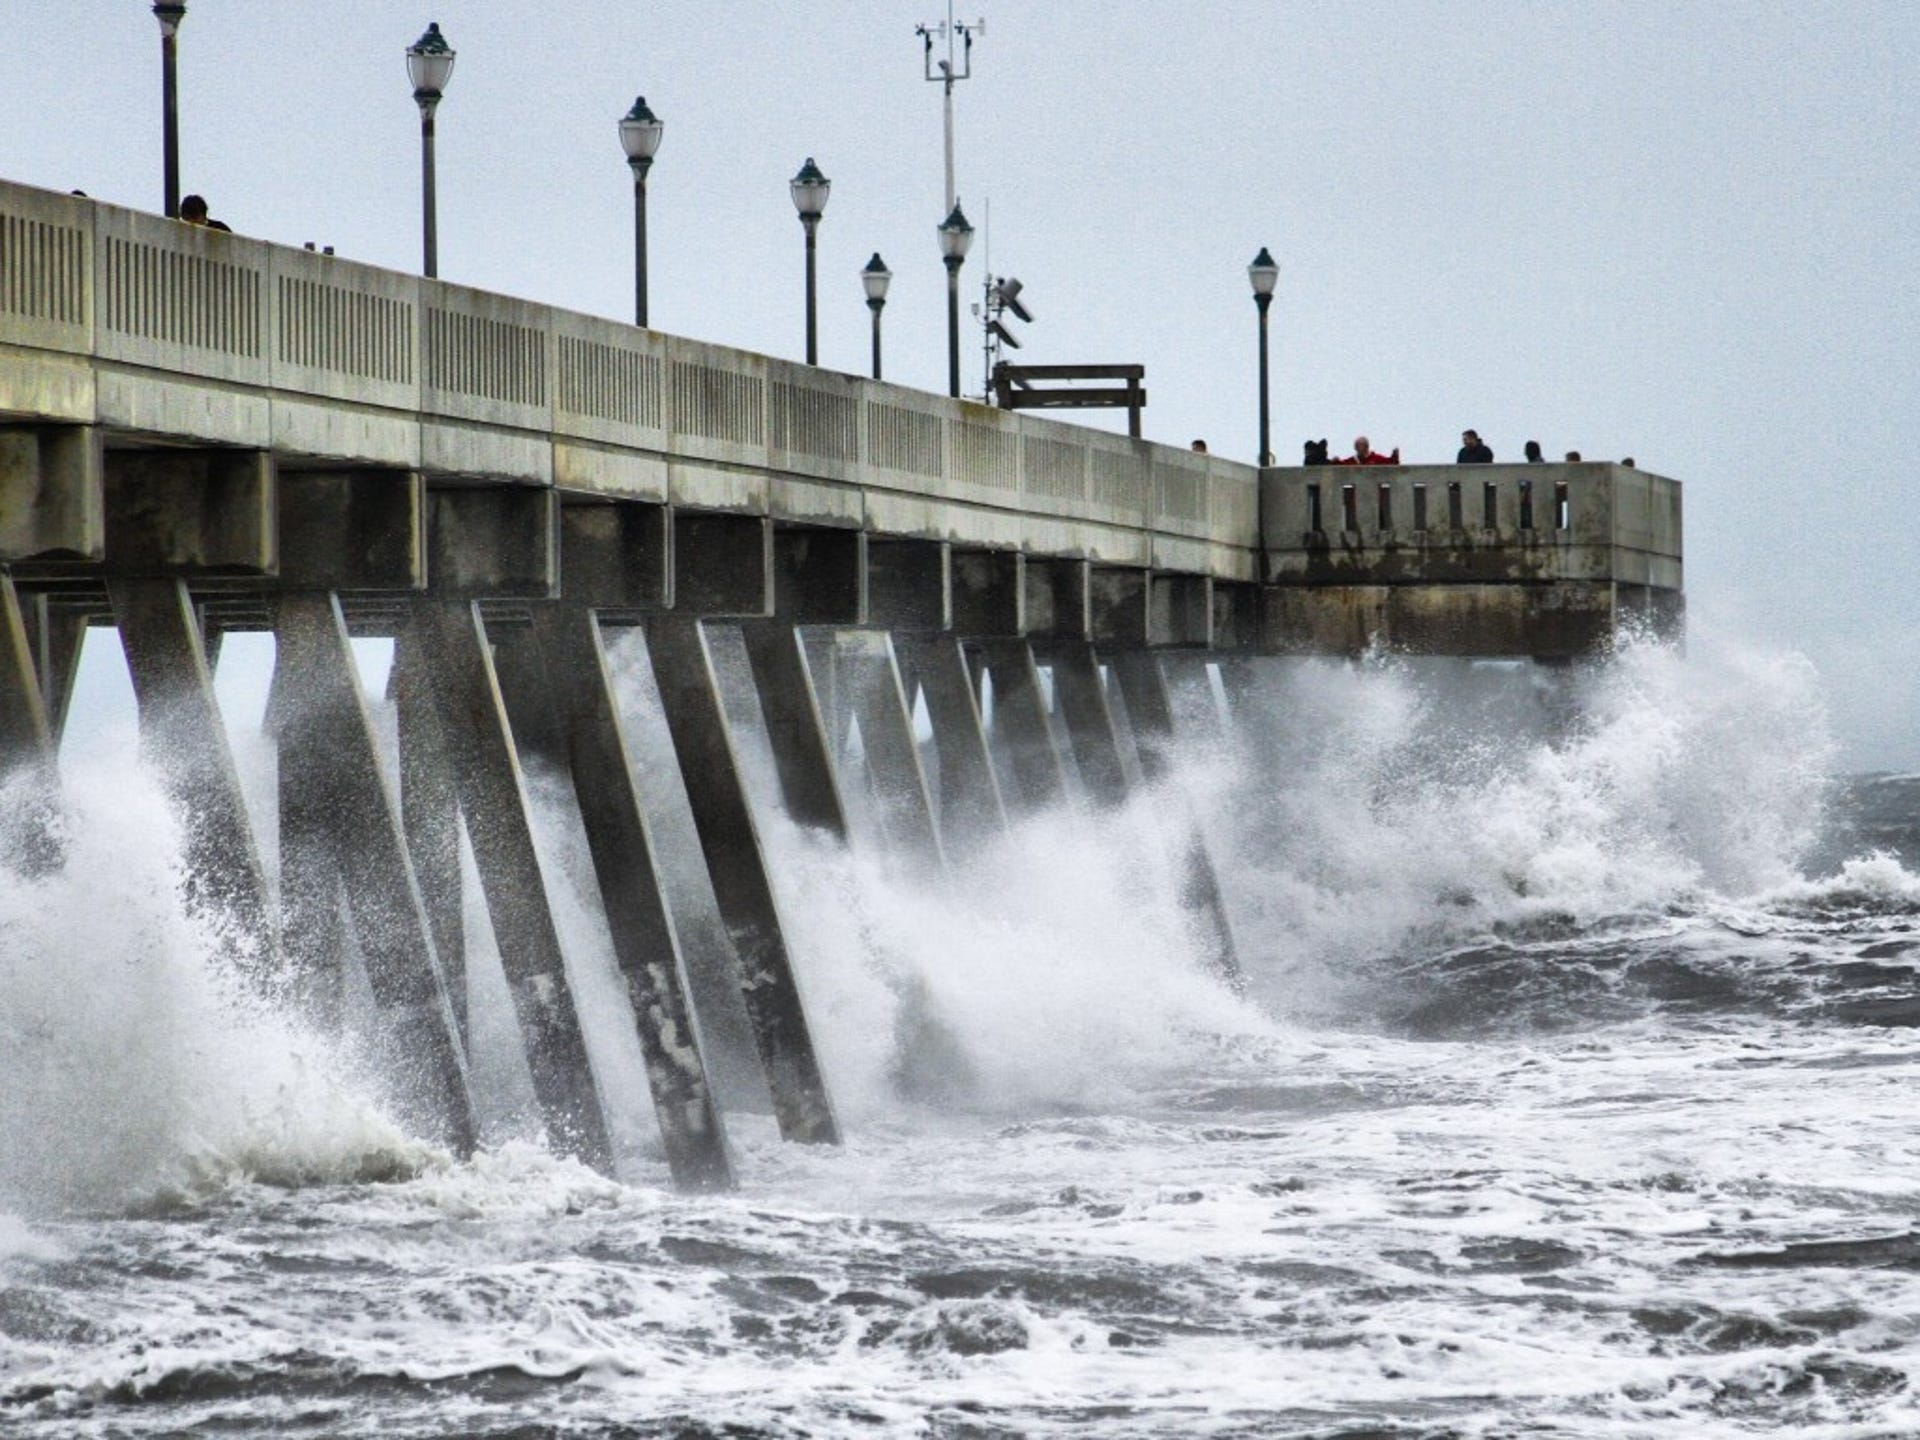 24/7 Wall St. analyzed at-risk U.S. coastal homes in U.S. metro areas, construction costs and census data to identify where hurricanes could cause the most damage.